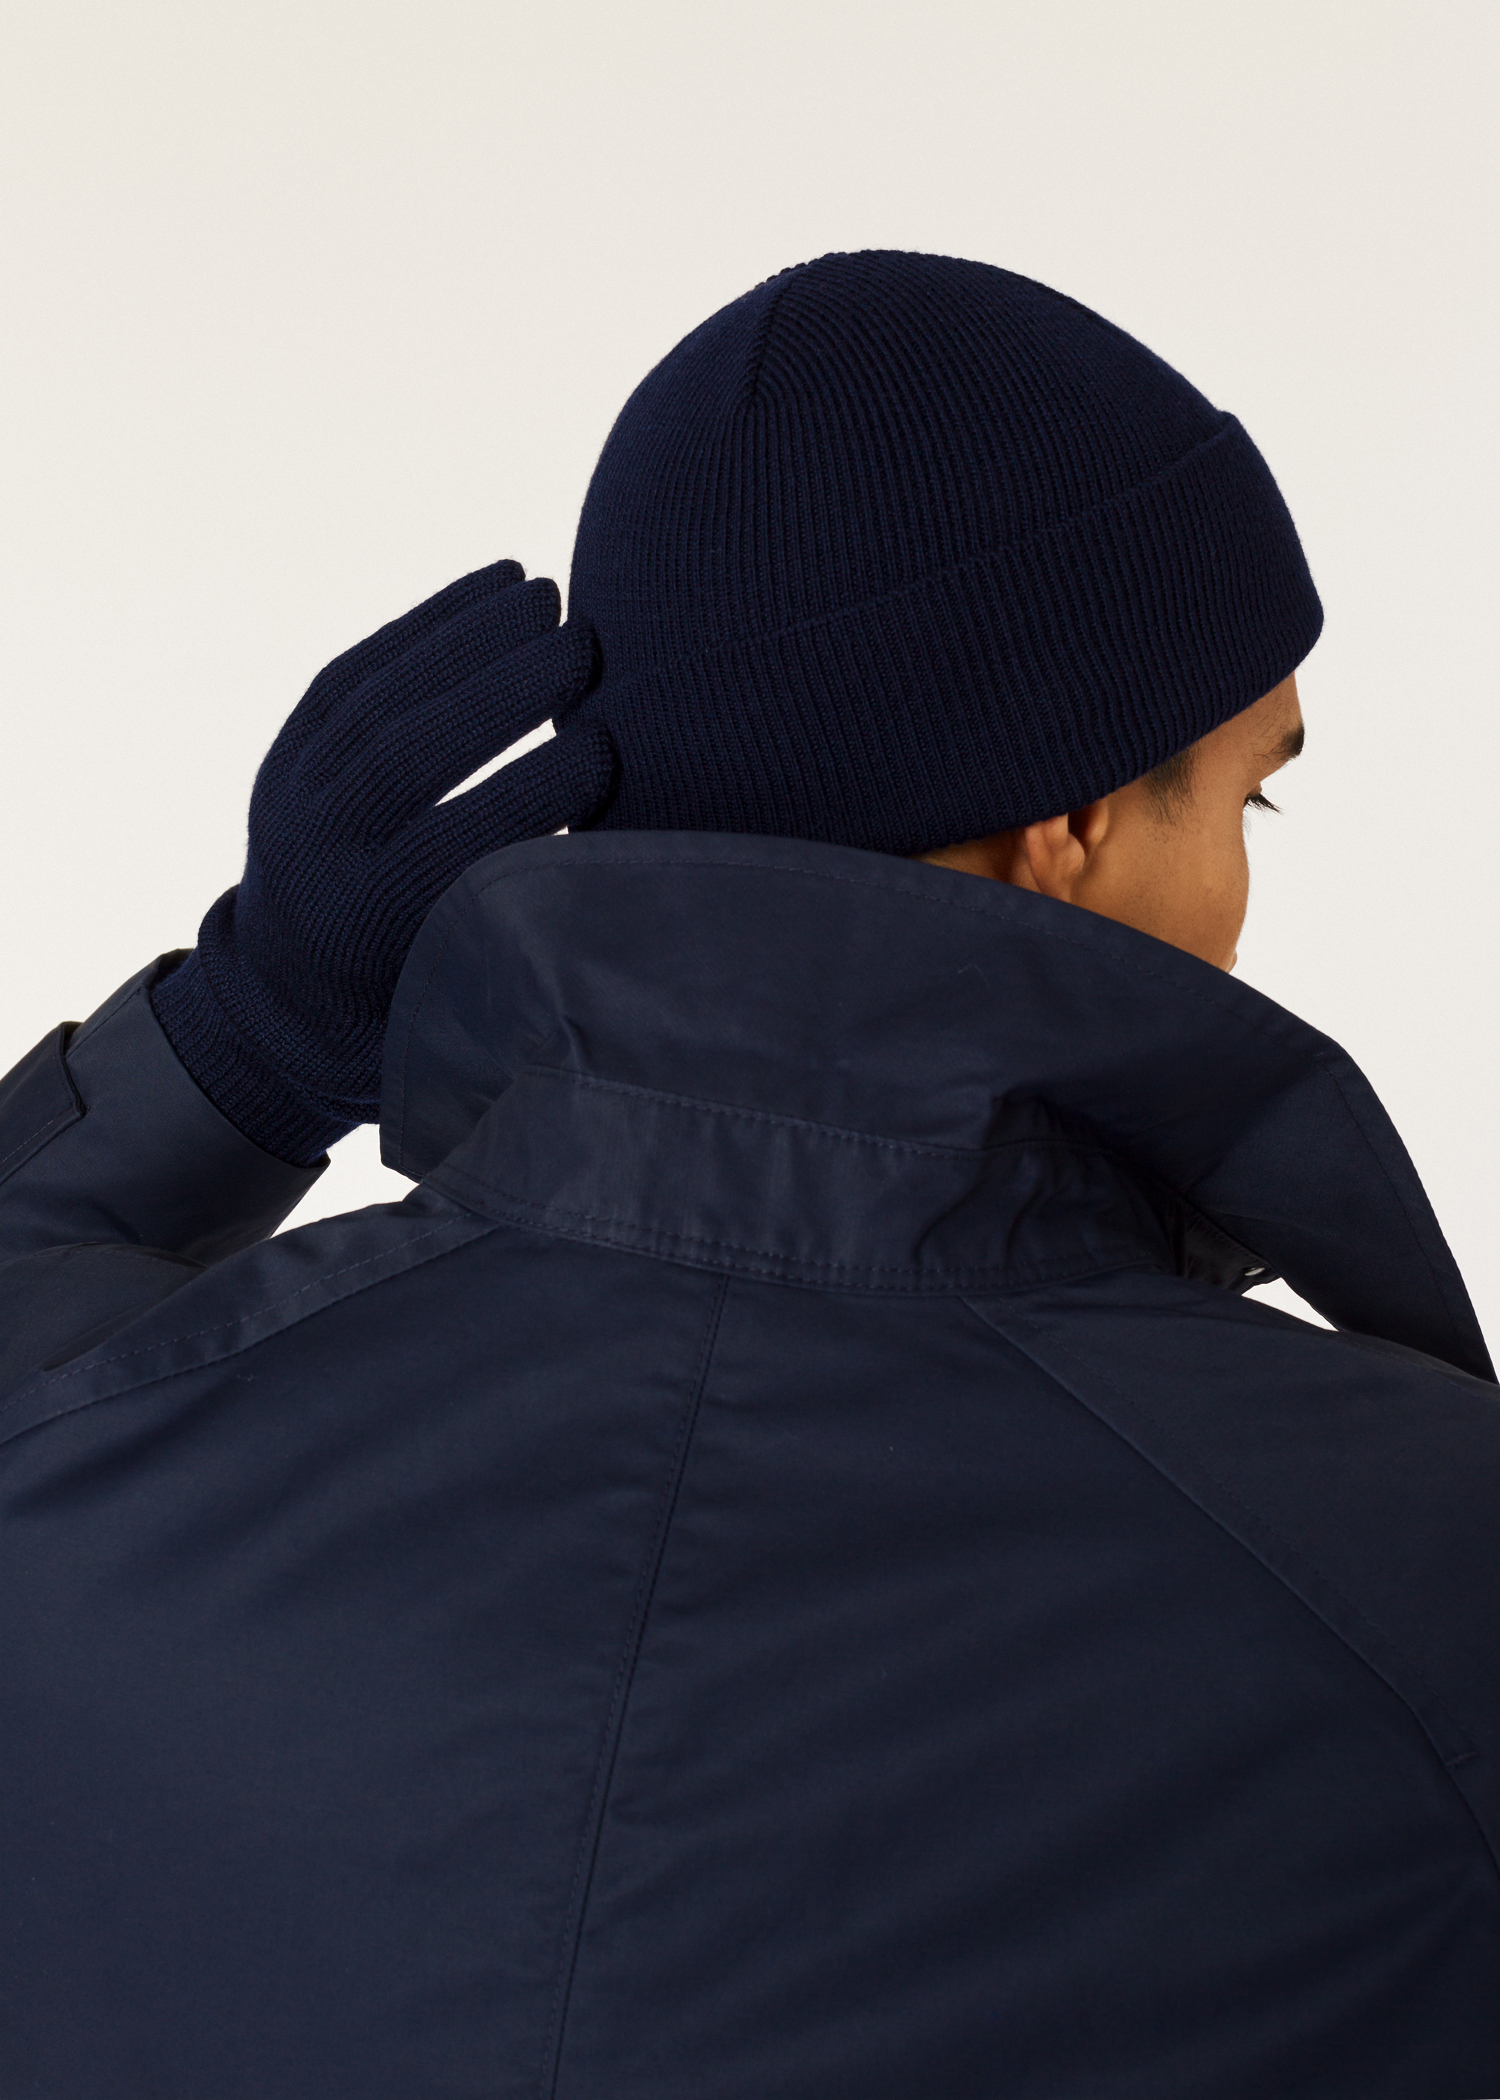 Model back View - Men s Navy  Zebra  Logo Ribbed Lambswool Beanie Hat Paul  Smith 63945ff77a68